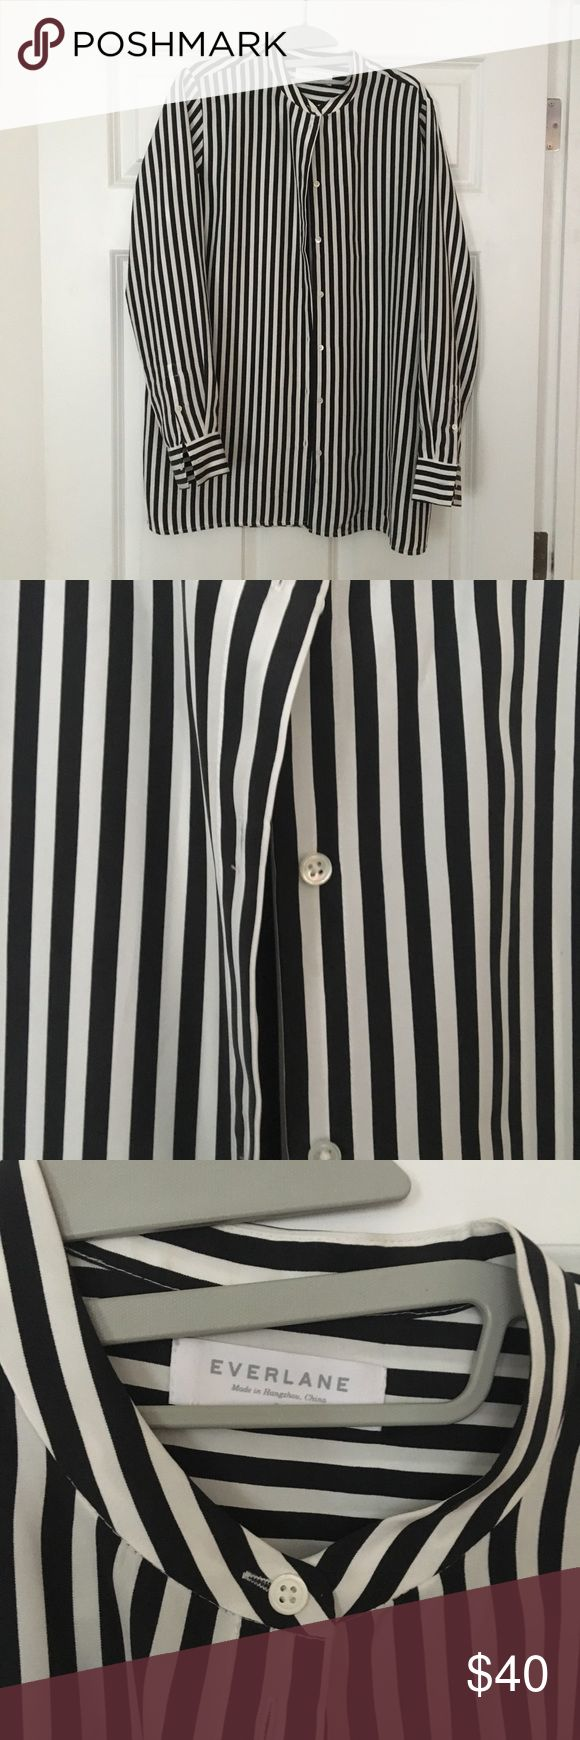 The Relaxed Silk Collarless Shirt - Bold Stripe Great condition! Only worn a few times. Relaxed and refined. This shirt is designed without a traditional collar and made in crepe de chine silk with easy drape. Everlane Tops Button Down Shirts